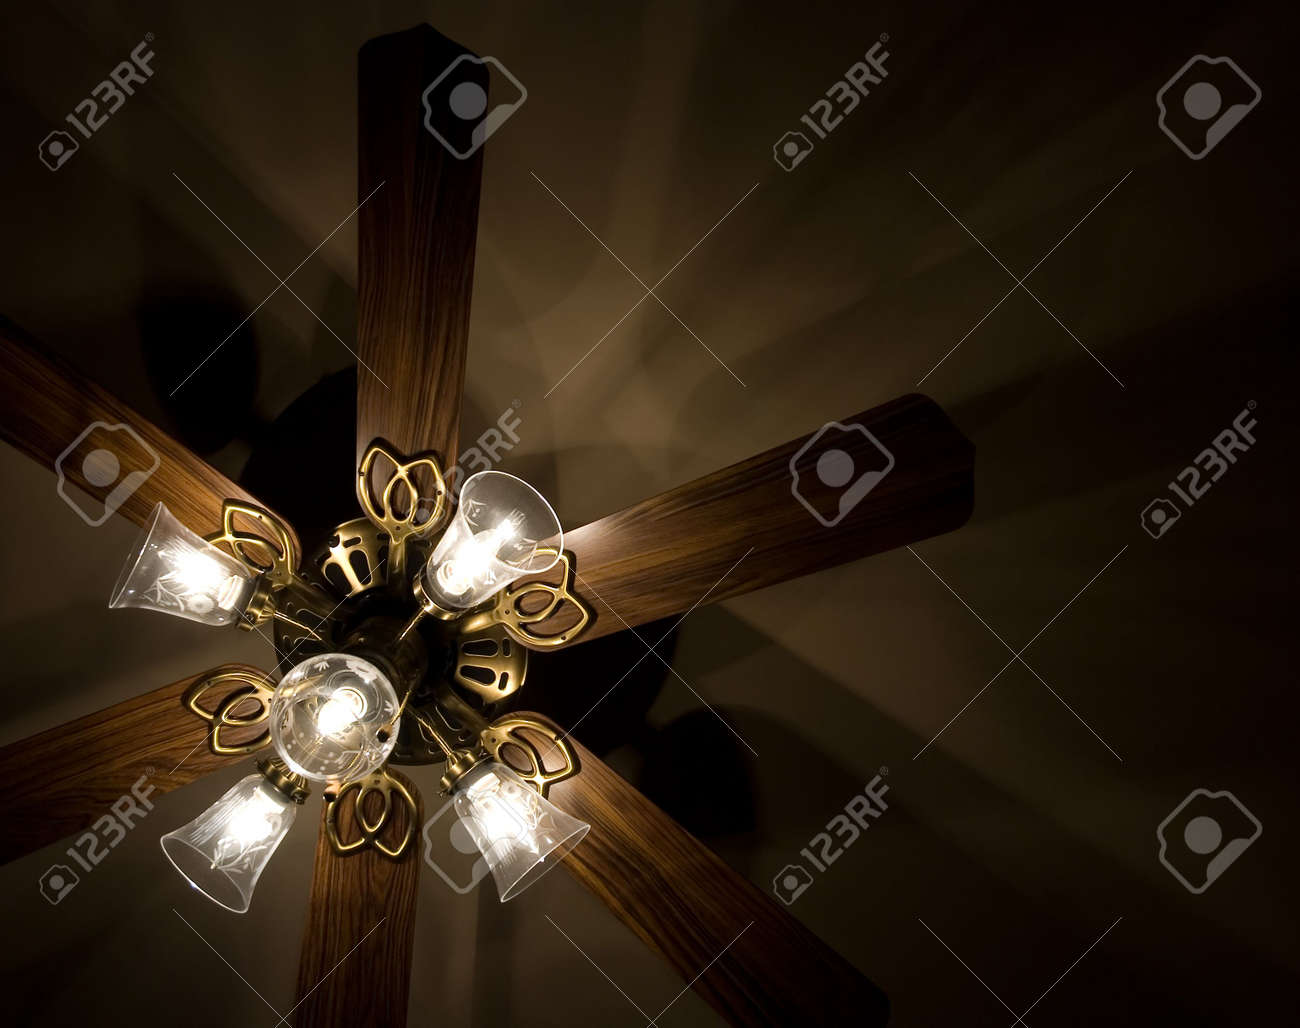 finish pinterest brushed nickel lights ceilings pendant ceiling and fan blades opal images dominionelecsup on best integrated lighted terna downlight with champagne etched kichler fans blankets clear lighting